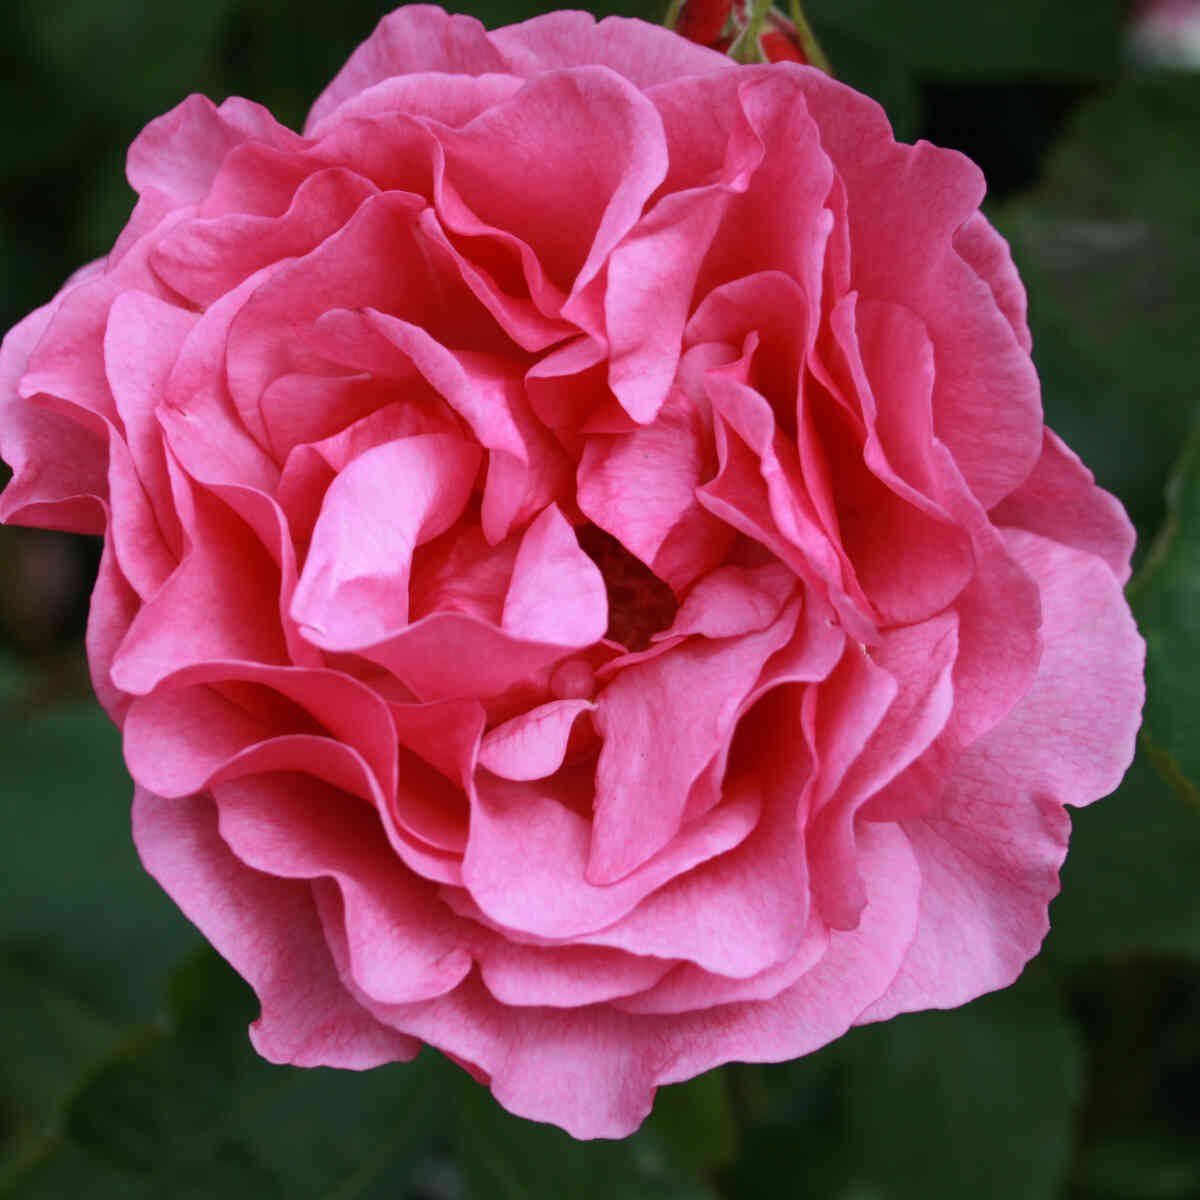 Rose 'Mr. Darcy'